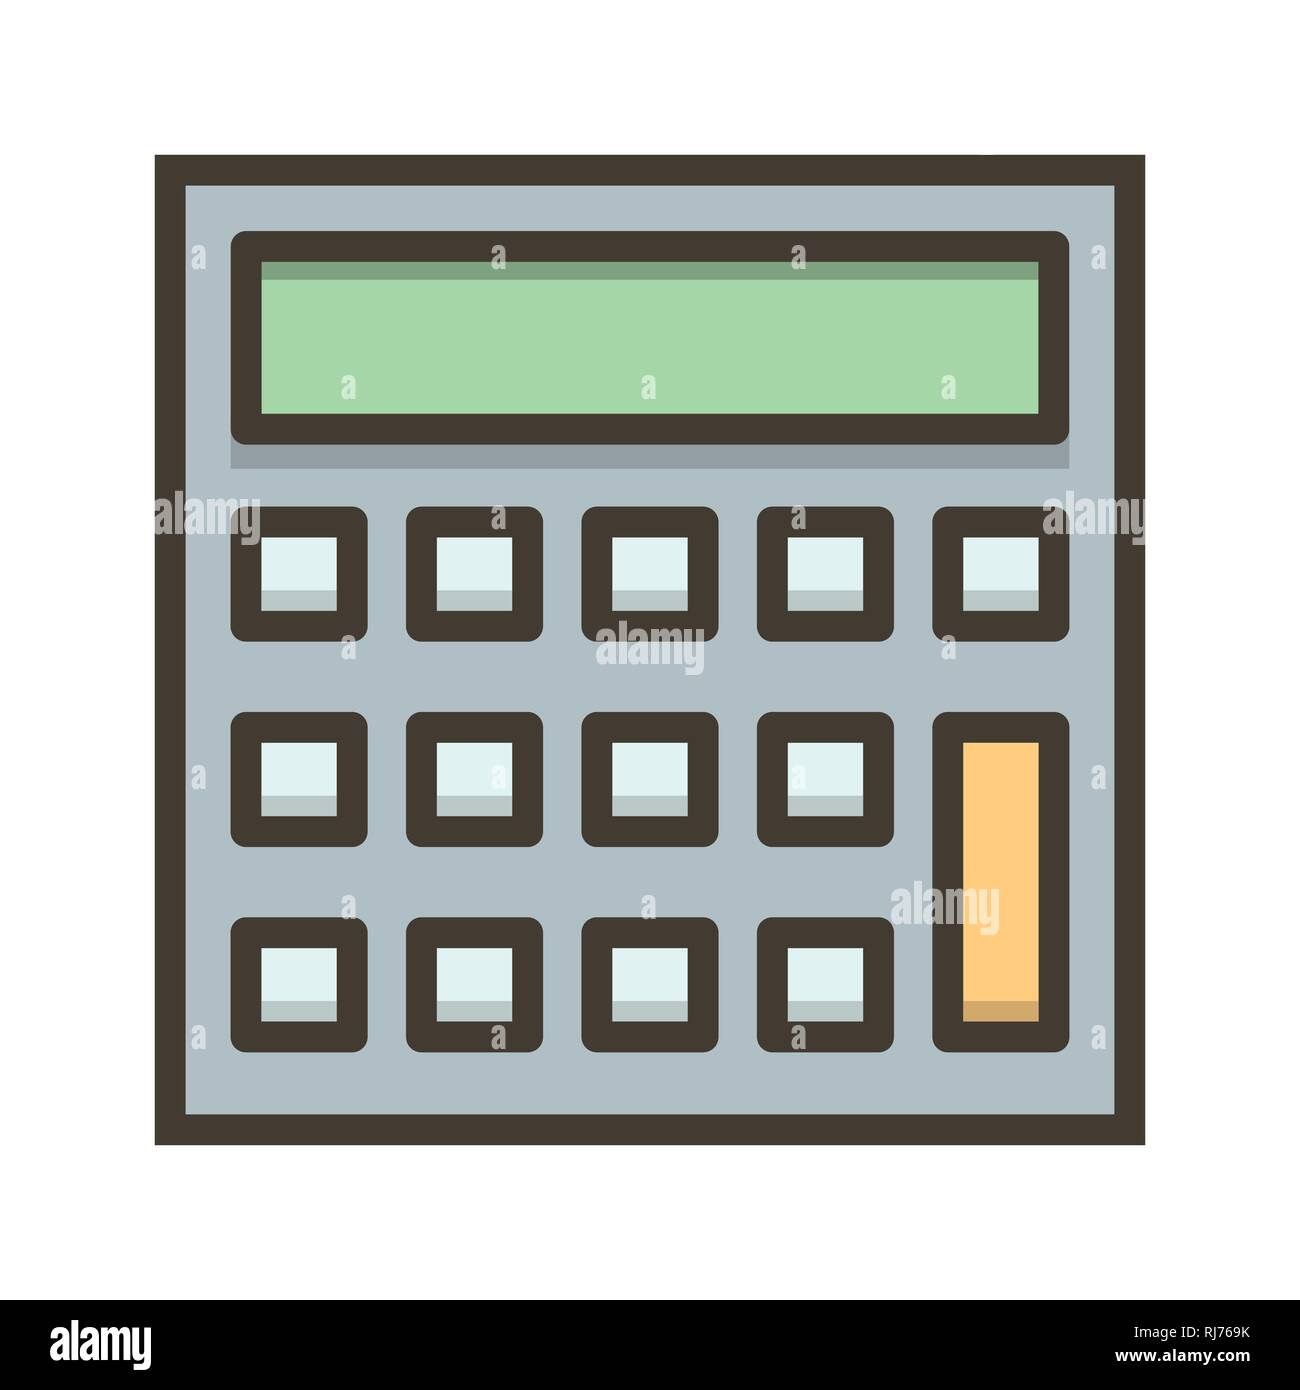 Vector Calculation Icon Stock Photo: 234957231 - Alamy